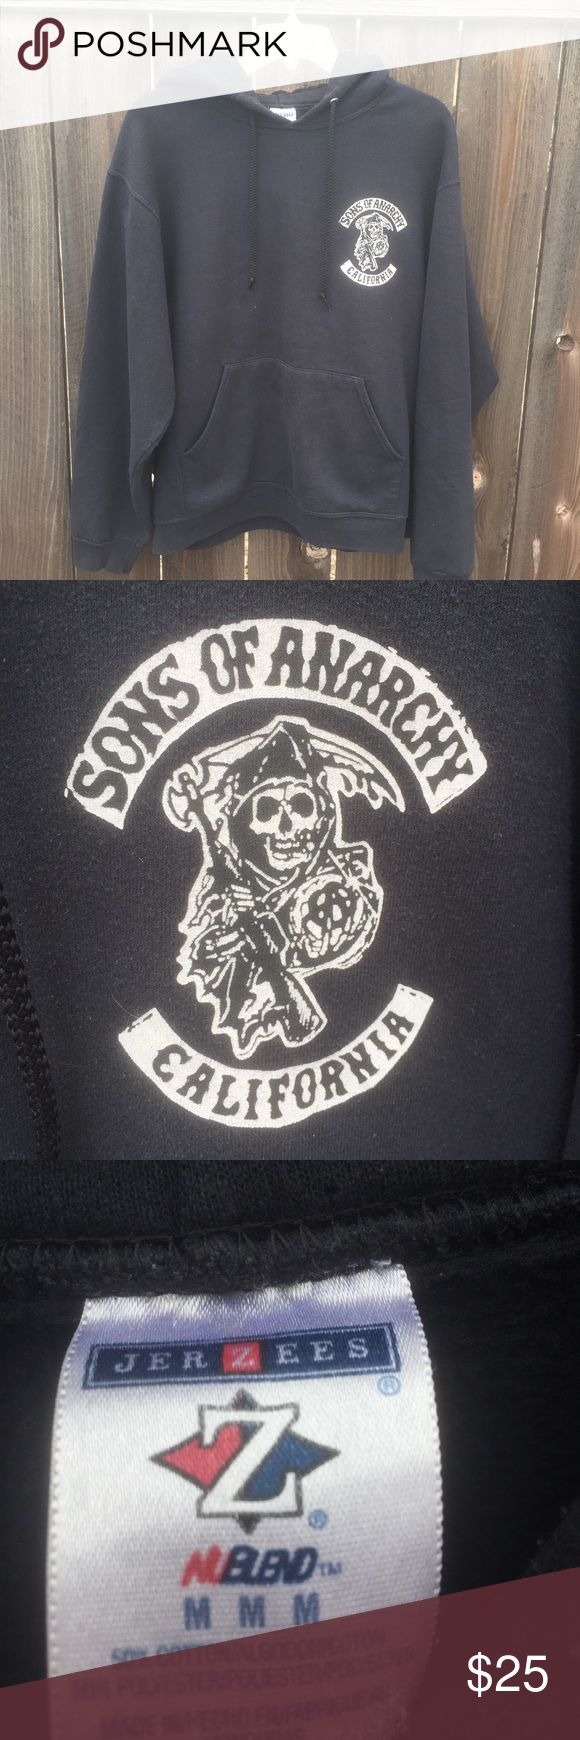 """SONS OF ANARCHY BLACK SWEATSHIRT SZ M SONS OF ANARCHY CALIFORNIA BLACK SWEATSHIRT SZ M-  HOODIE FRONT LENGTH 24.5"""" ARMPIT TO ARMPIT 22.5"""" DRAWSTRING- SONS OF ANARCHY  Tops Sweatshirts & Hoodies"""